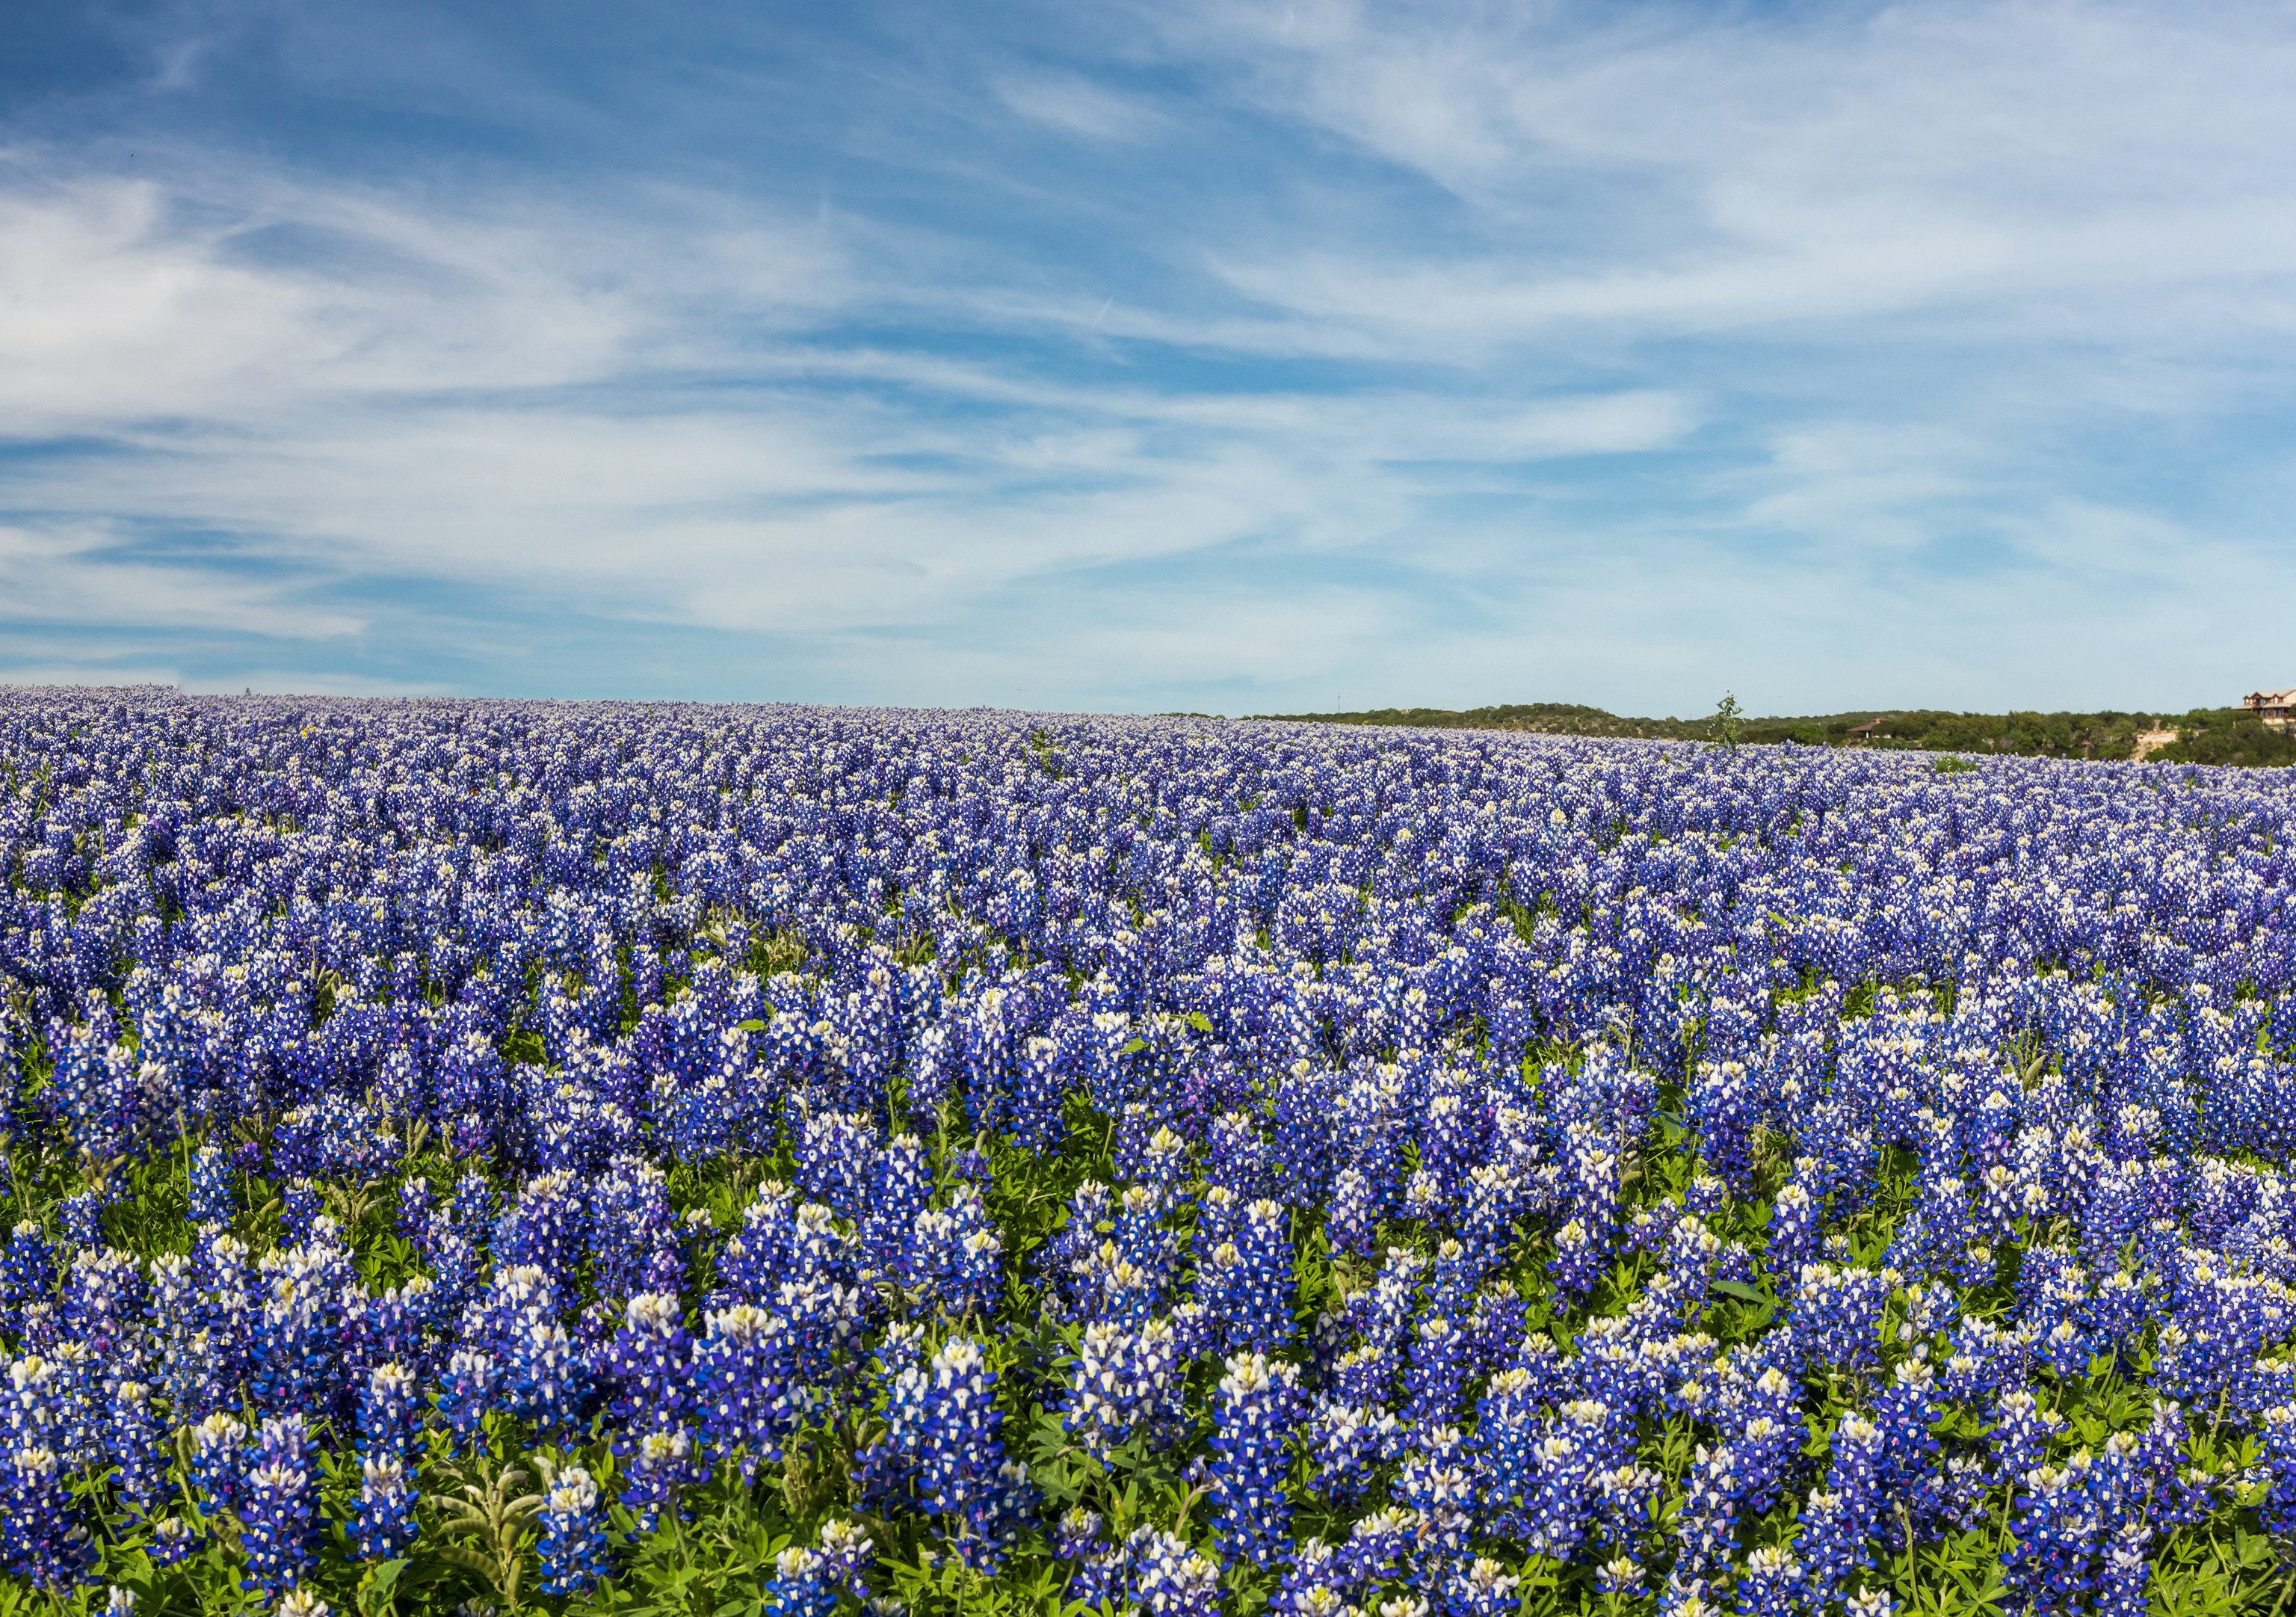 Trip Ideas outdoor tree flower bluebonnet plant lupin field land plant flowering plant grassland meadow wildflower prairie english lavender lavender crowd